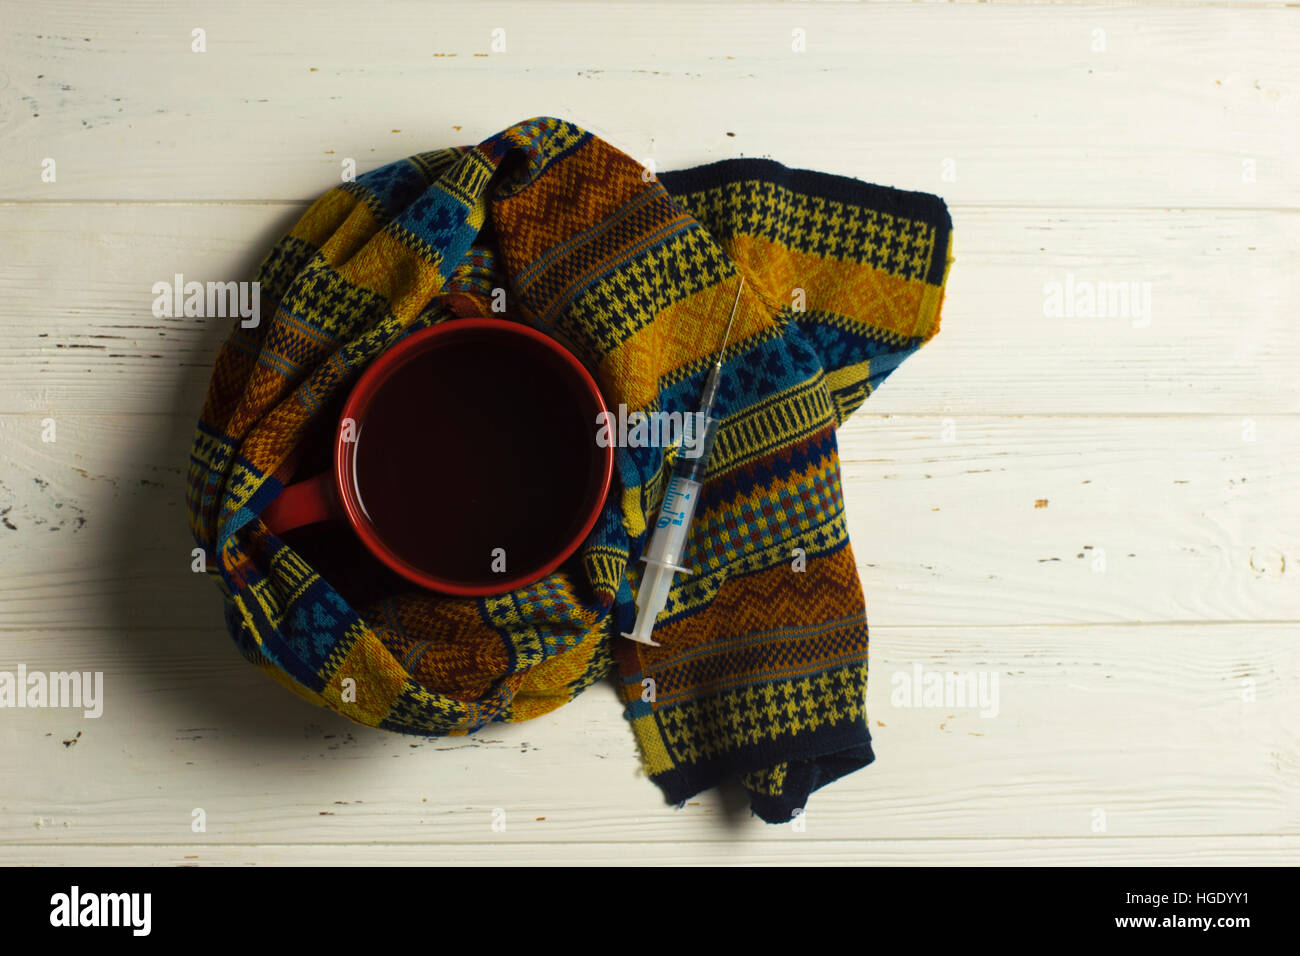 Teacup, scarf and syringe: winter illness safety concept - Stock Image